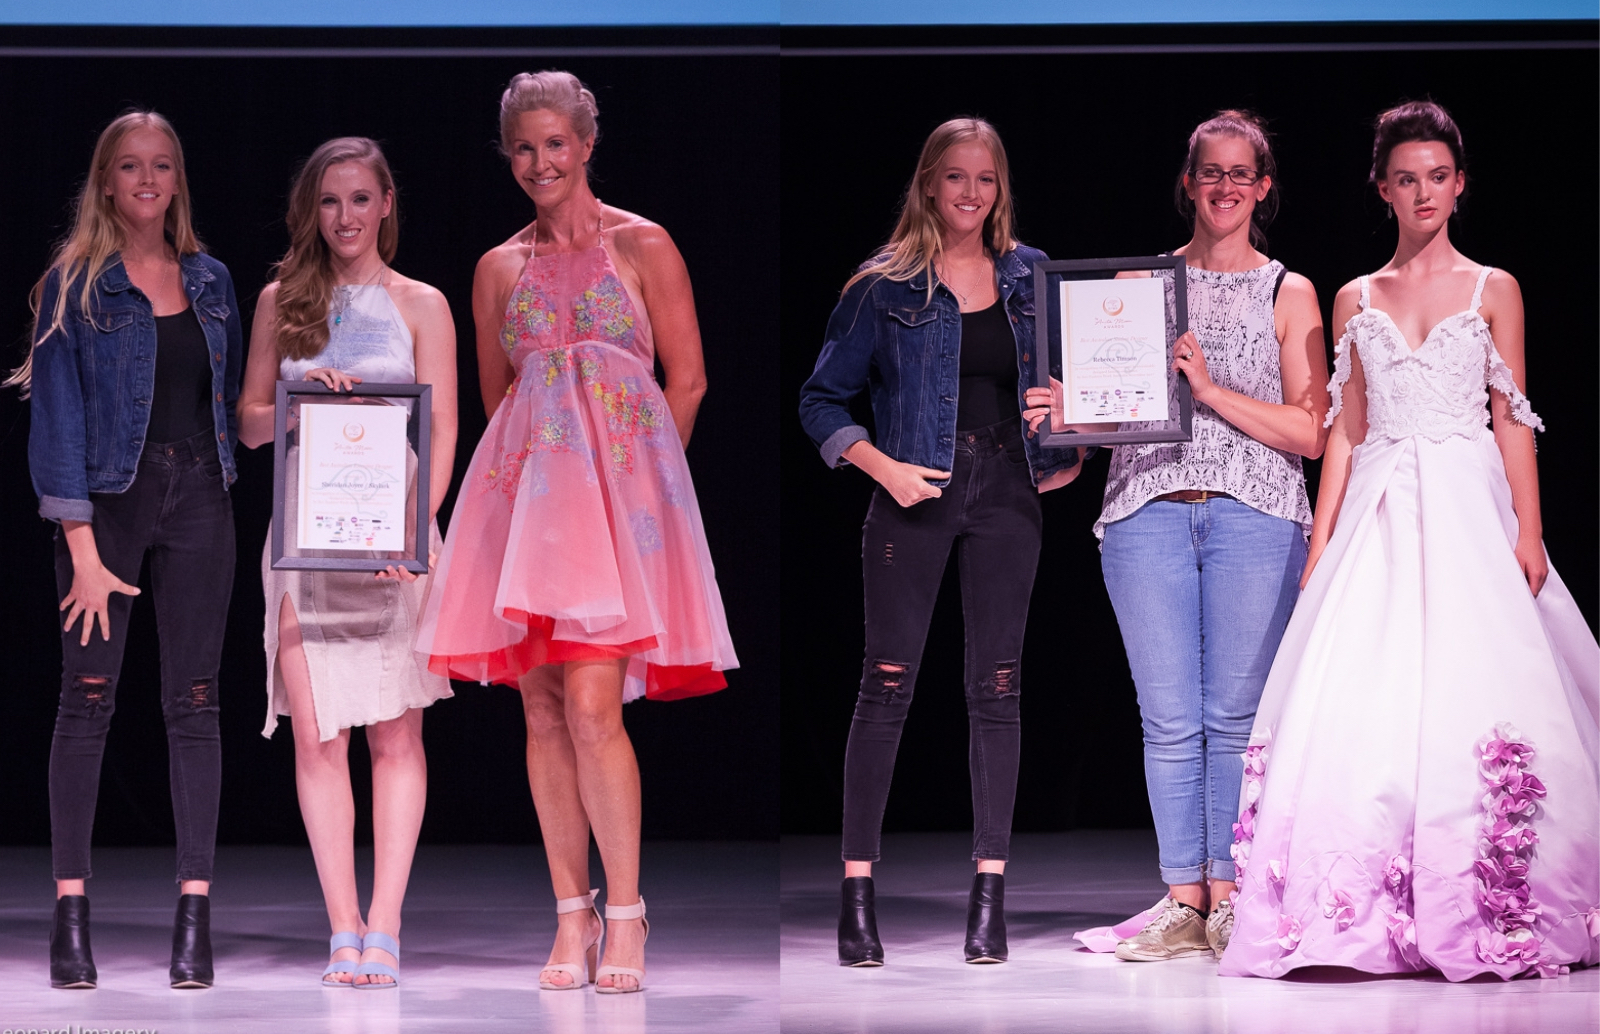 The above cover photos by Harry Leonard show two of the inaugural  winners at EFWA 2017.  Left to right: Best Emerging Designer - Skylark  and Best Student Designer - Bek Bek Timson.